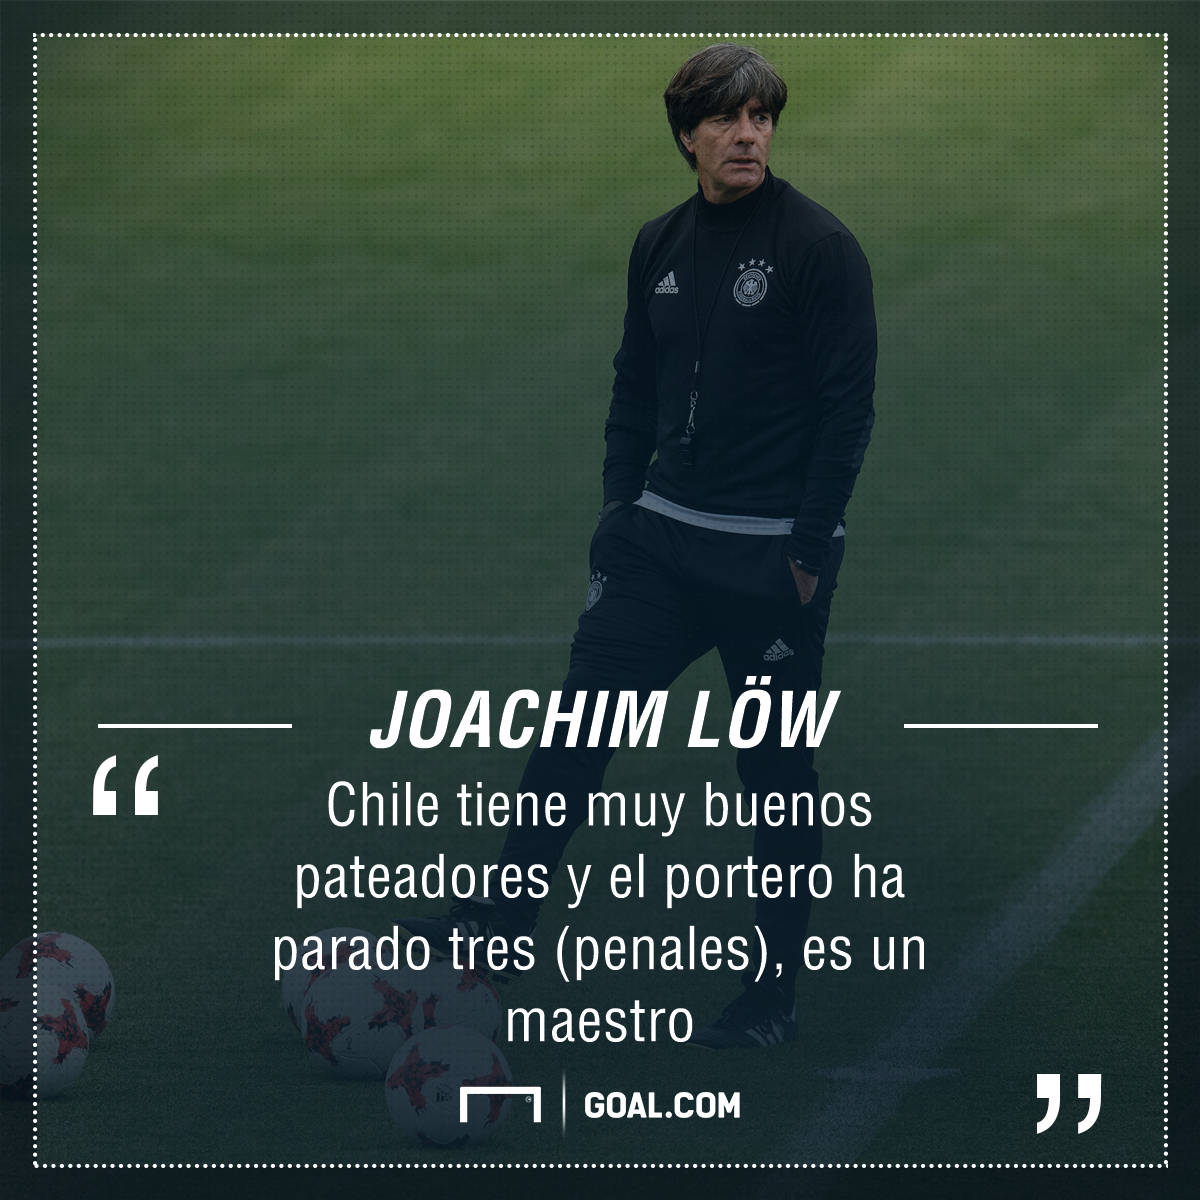 Joachim Löw press 010717